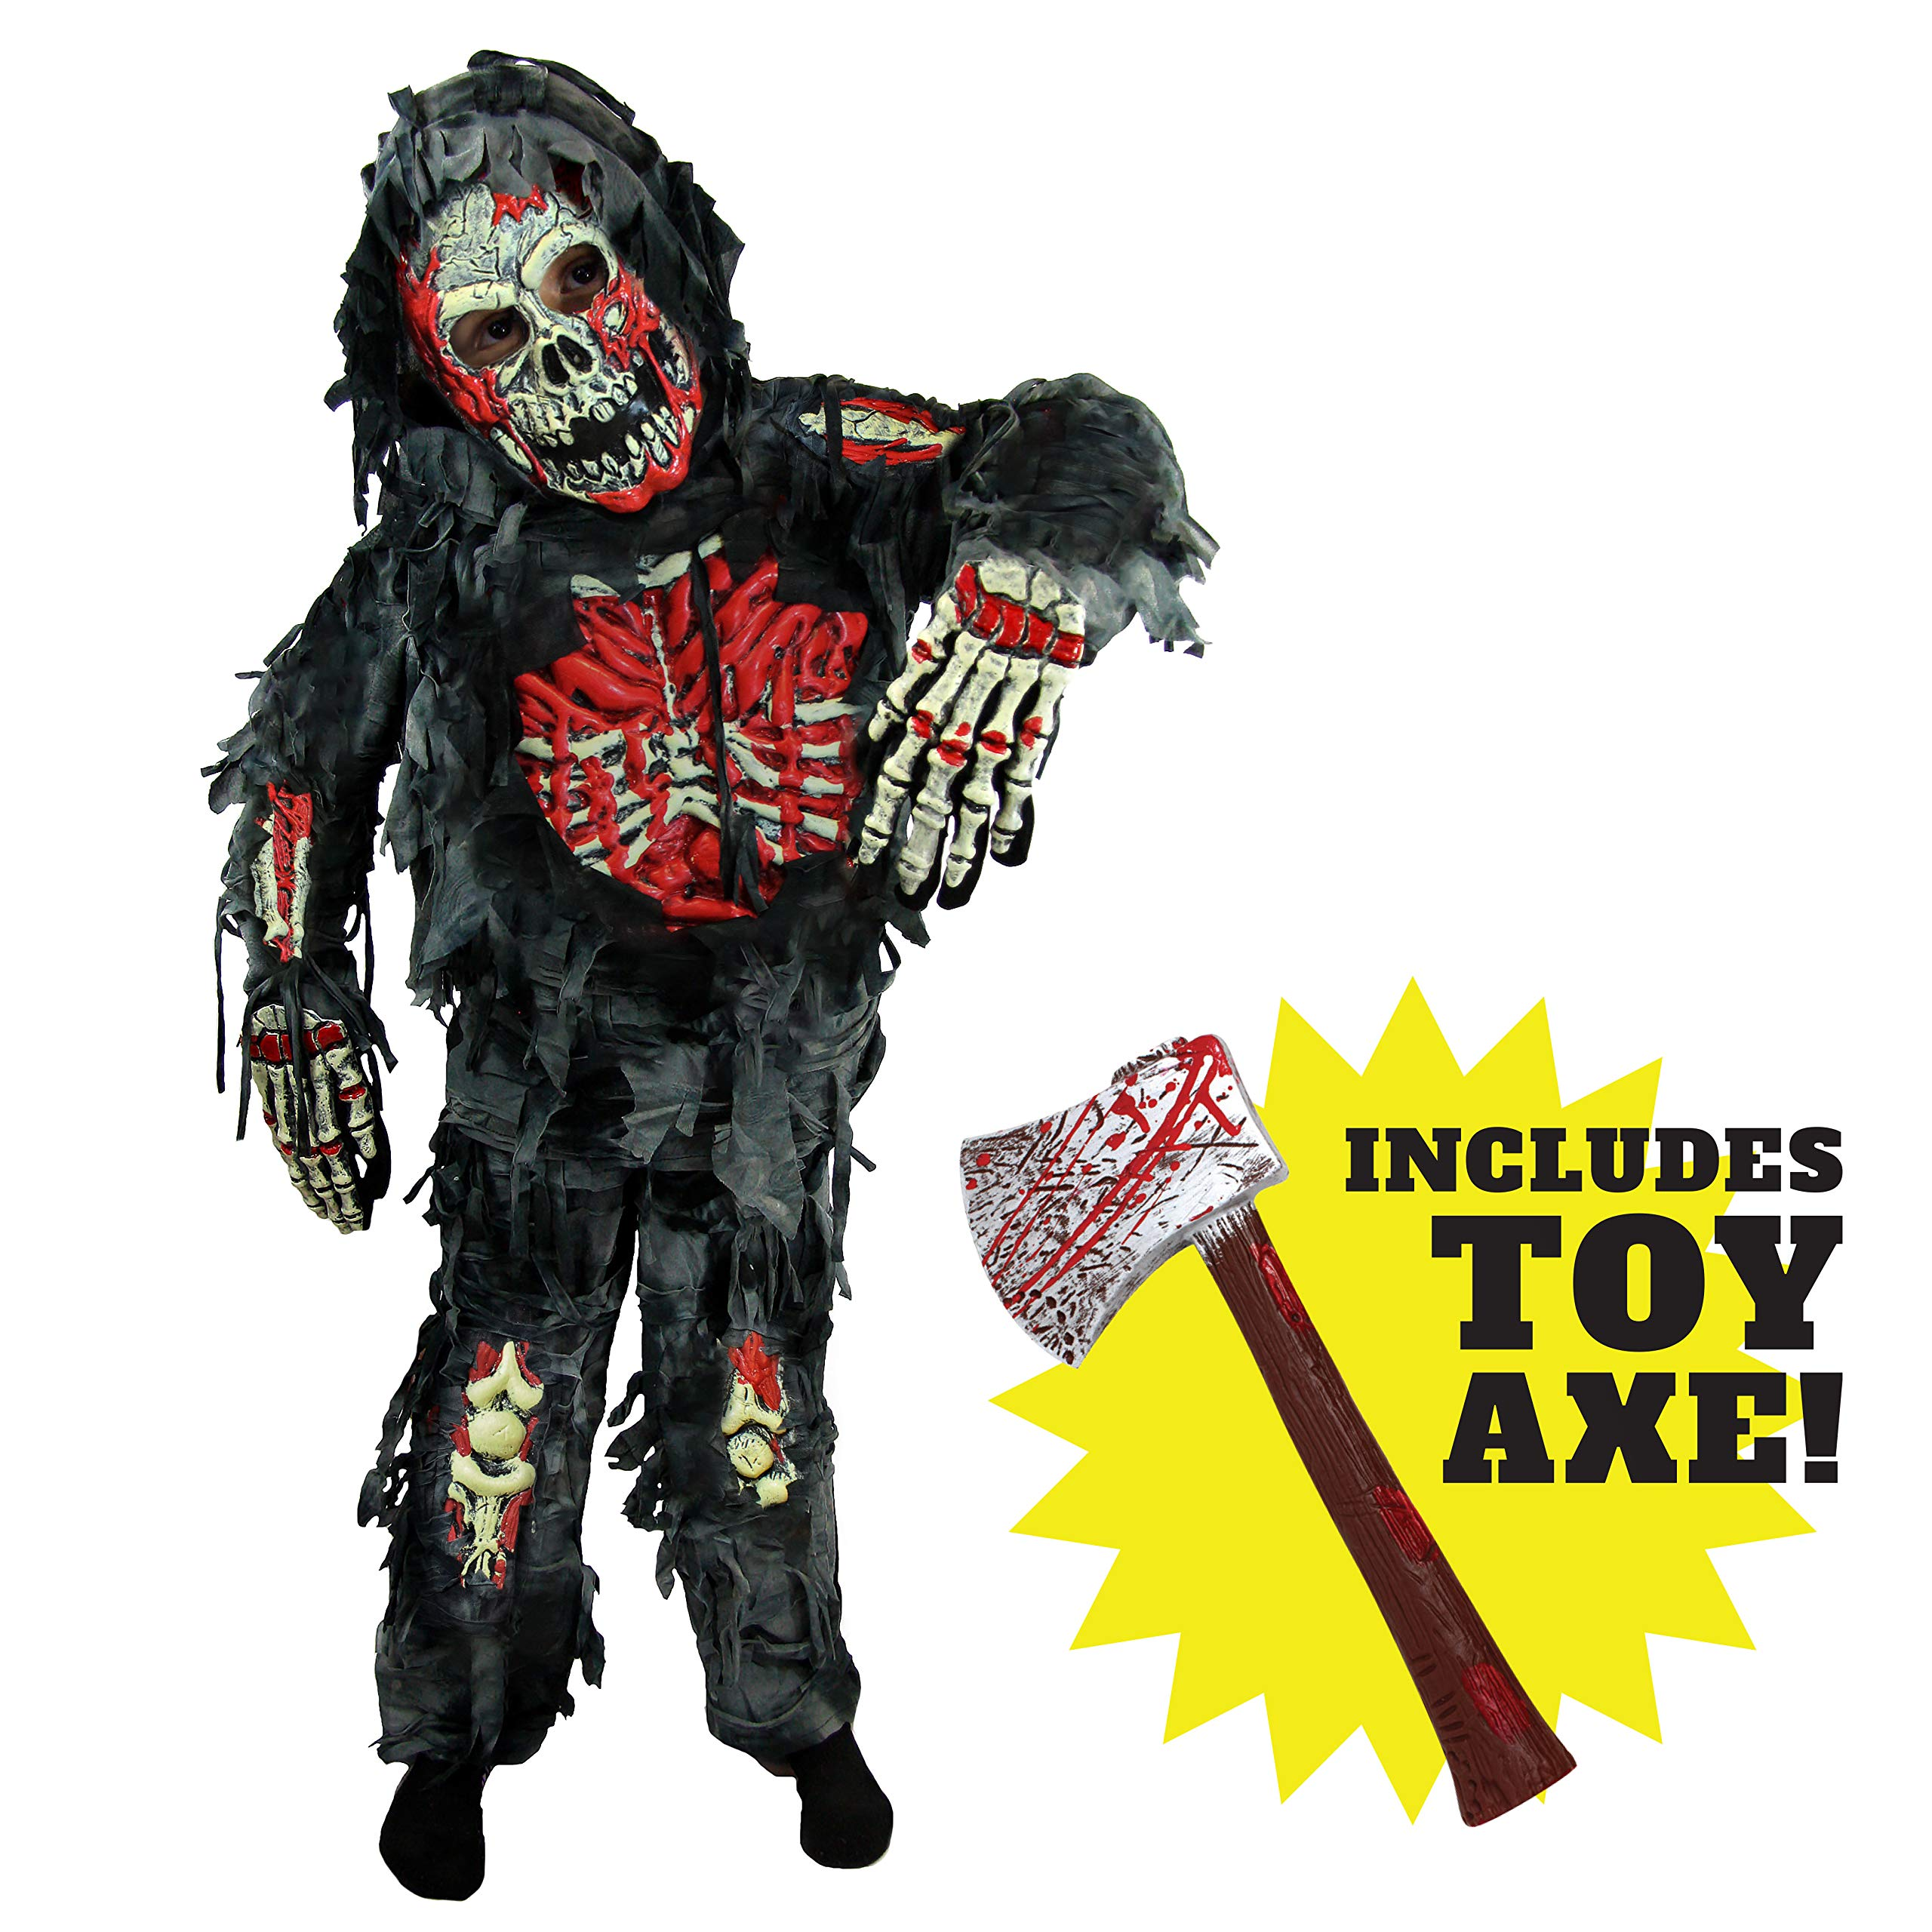 Spooktacular Creations Zombie Deluxe Costume for Child with Bloody Axe (M(8-10)) by Spooktacular Creations